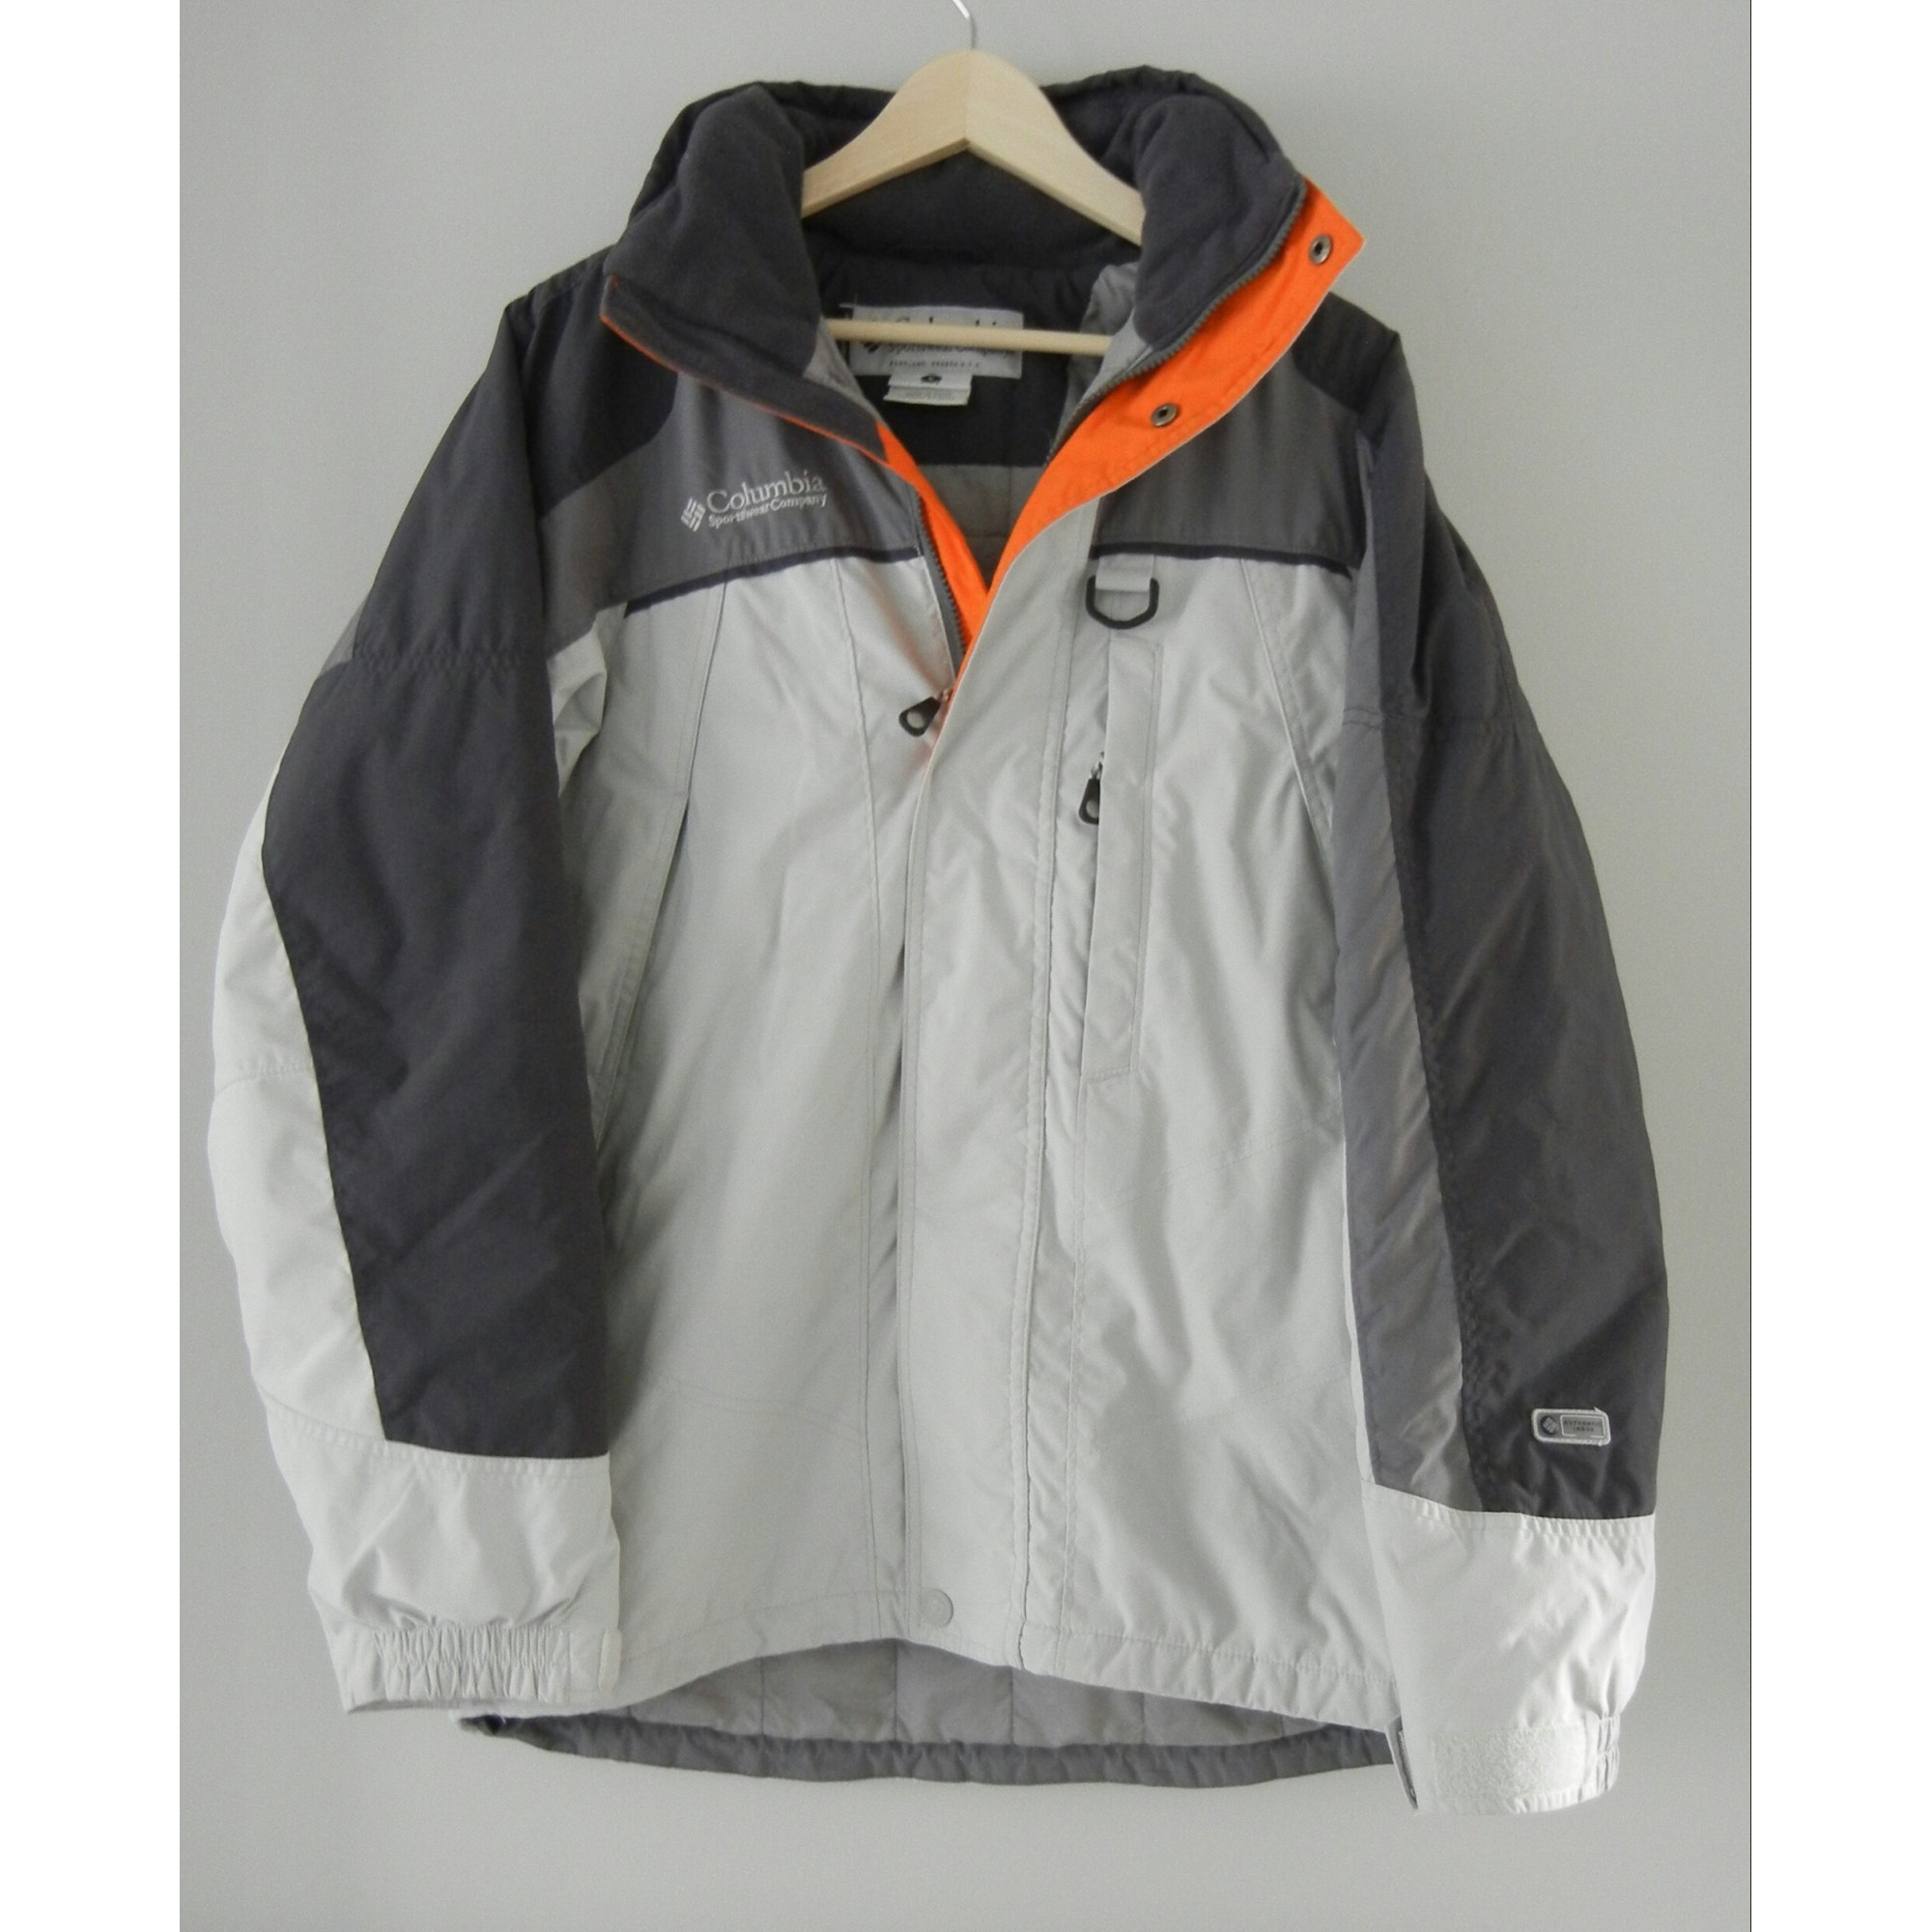 plus récent f6745 79c25 Manteau